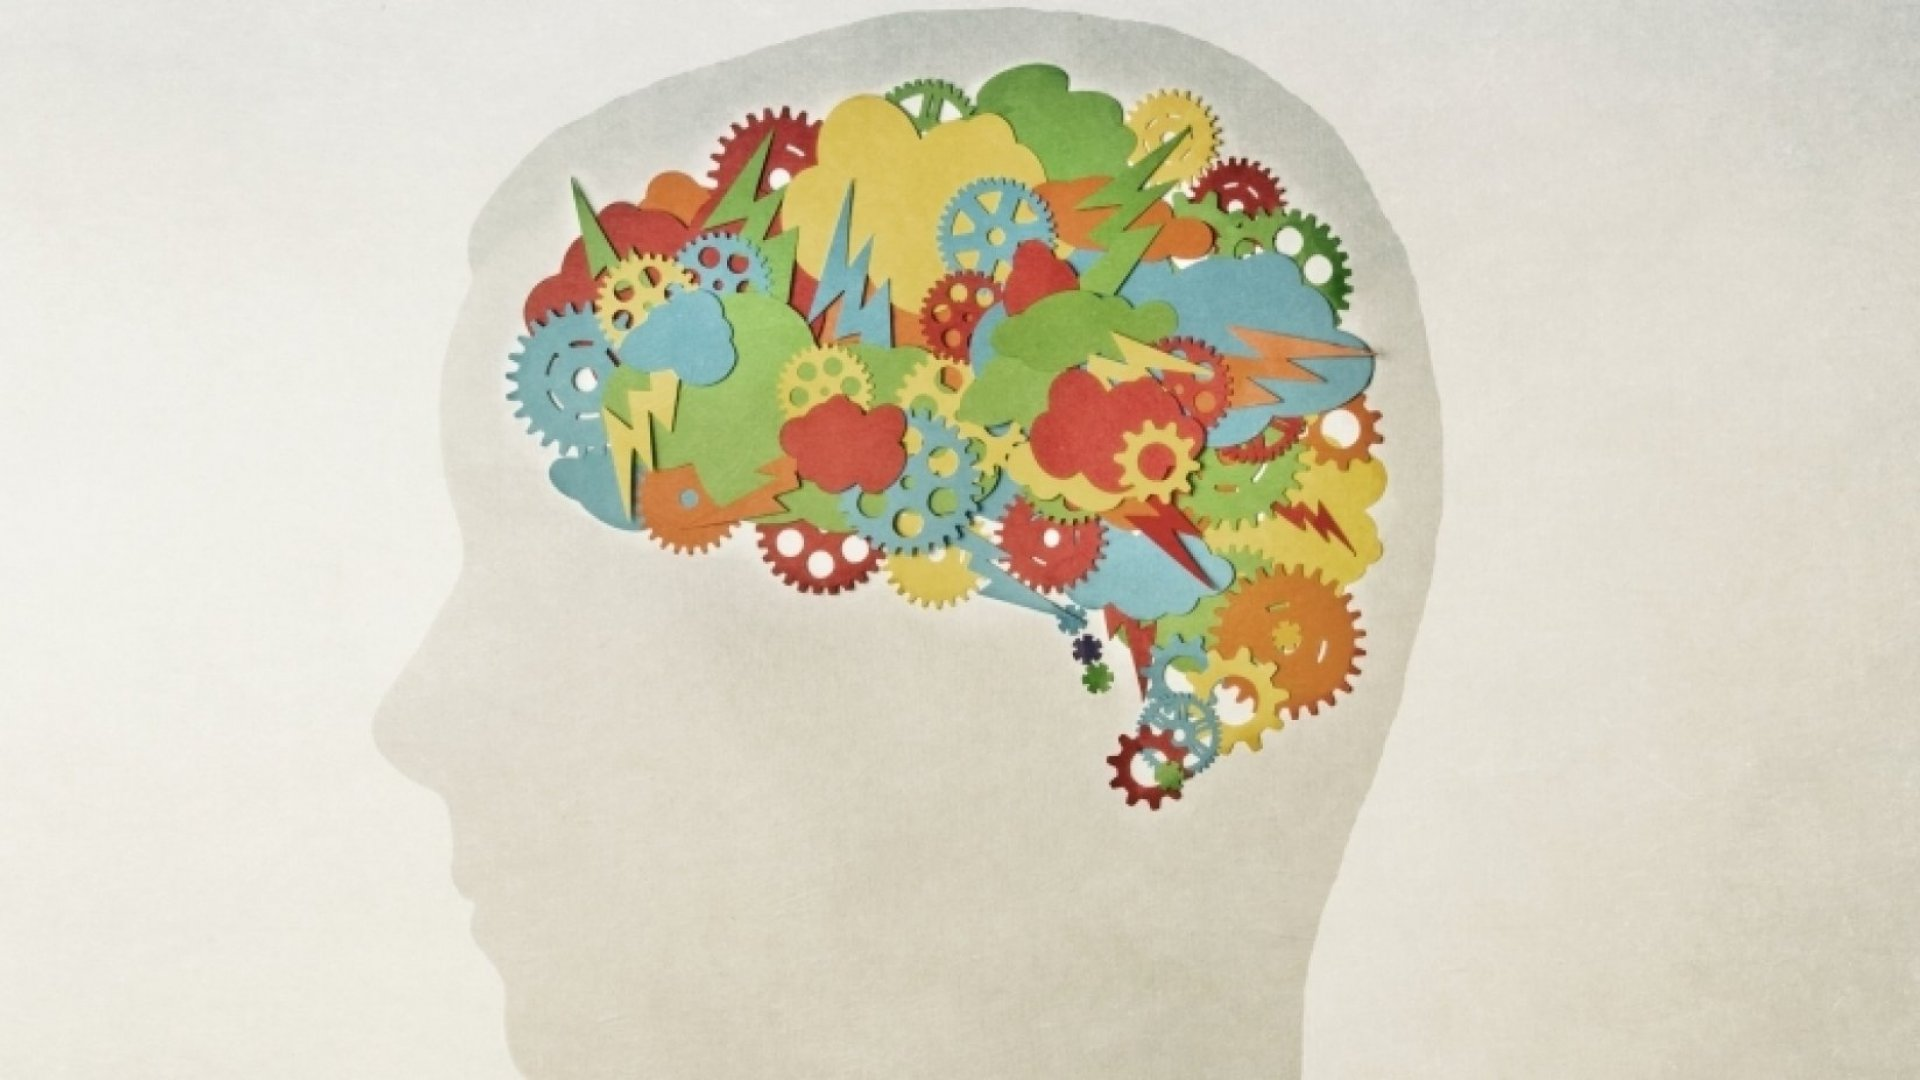 3 Easy Ways to Exercise Your Brain's Creativity